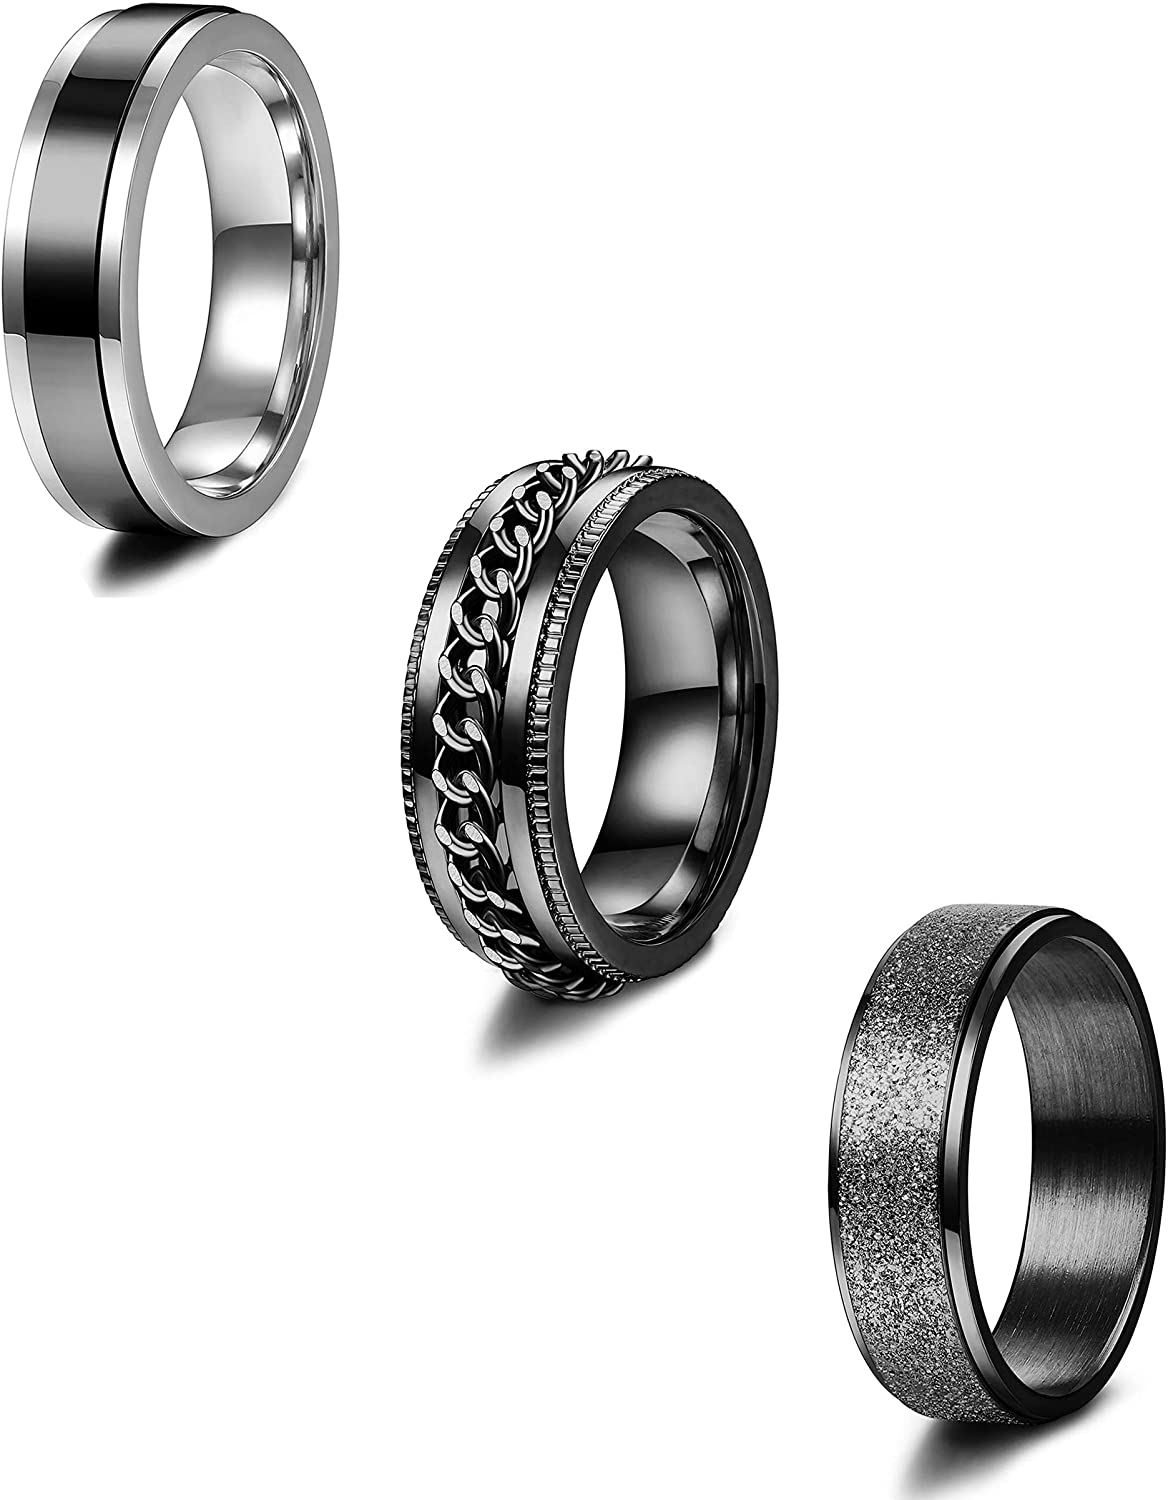 YADOCA 3 St/ücke Edelstahl Ringe Herren Schwarz Cool Rings Chain Biker Rillenkante 8MM Breites Wedding Engagement Ringe Set Herren Band Ring Gr/ö/ße 7-13